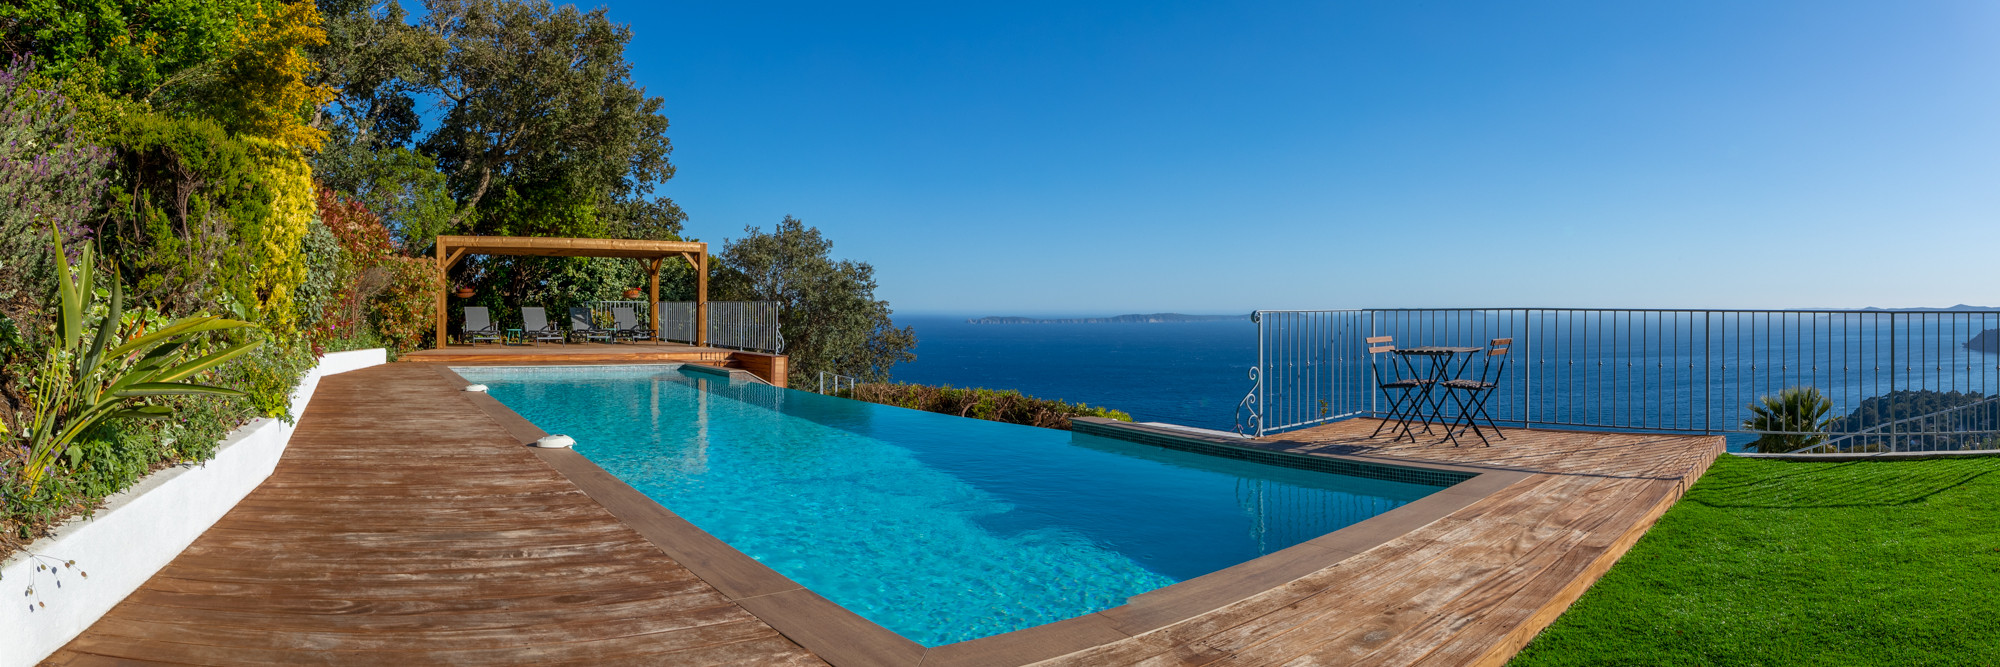 Vistazur guest's infinity pool, Azure Coast, France